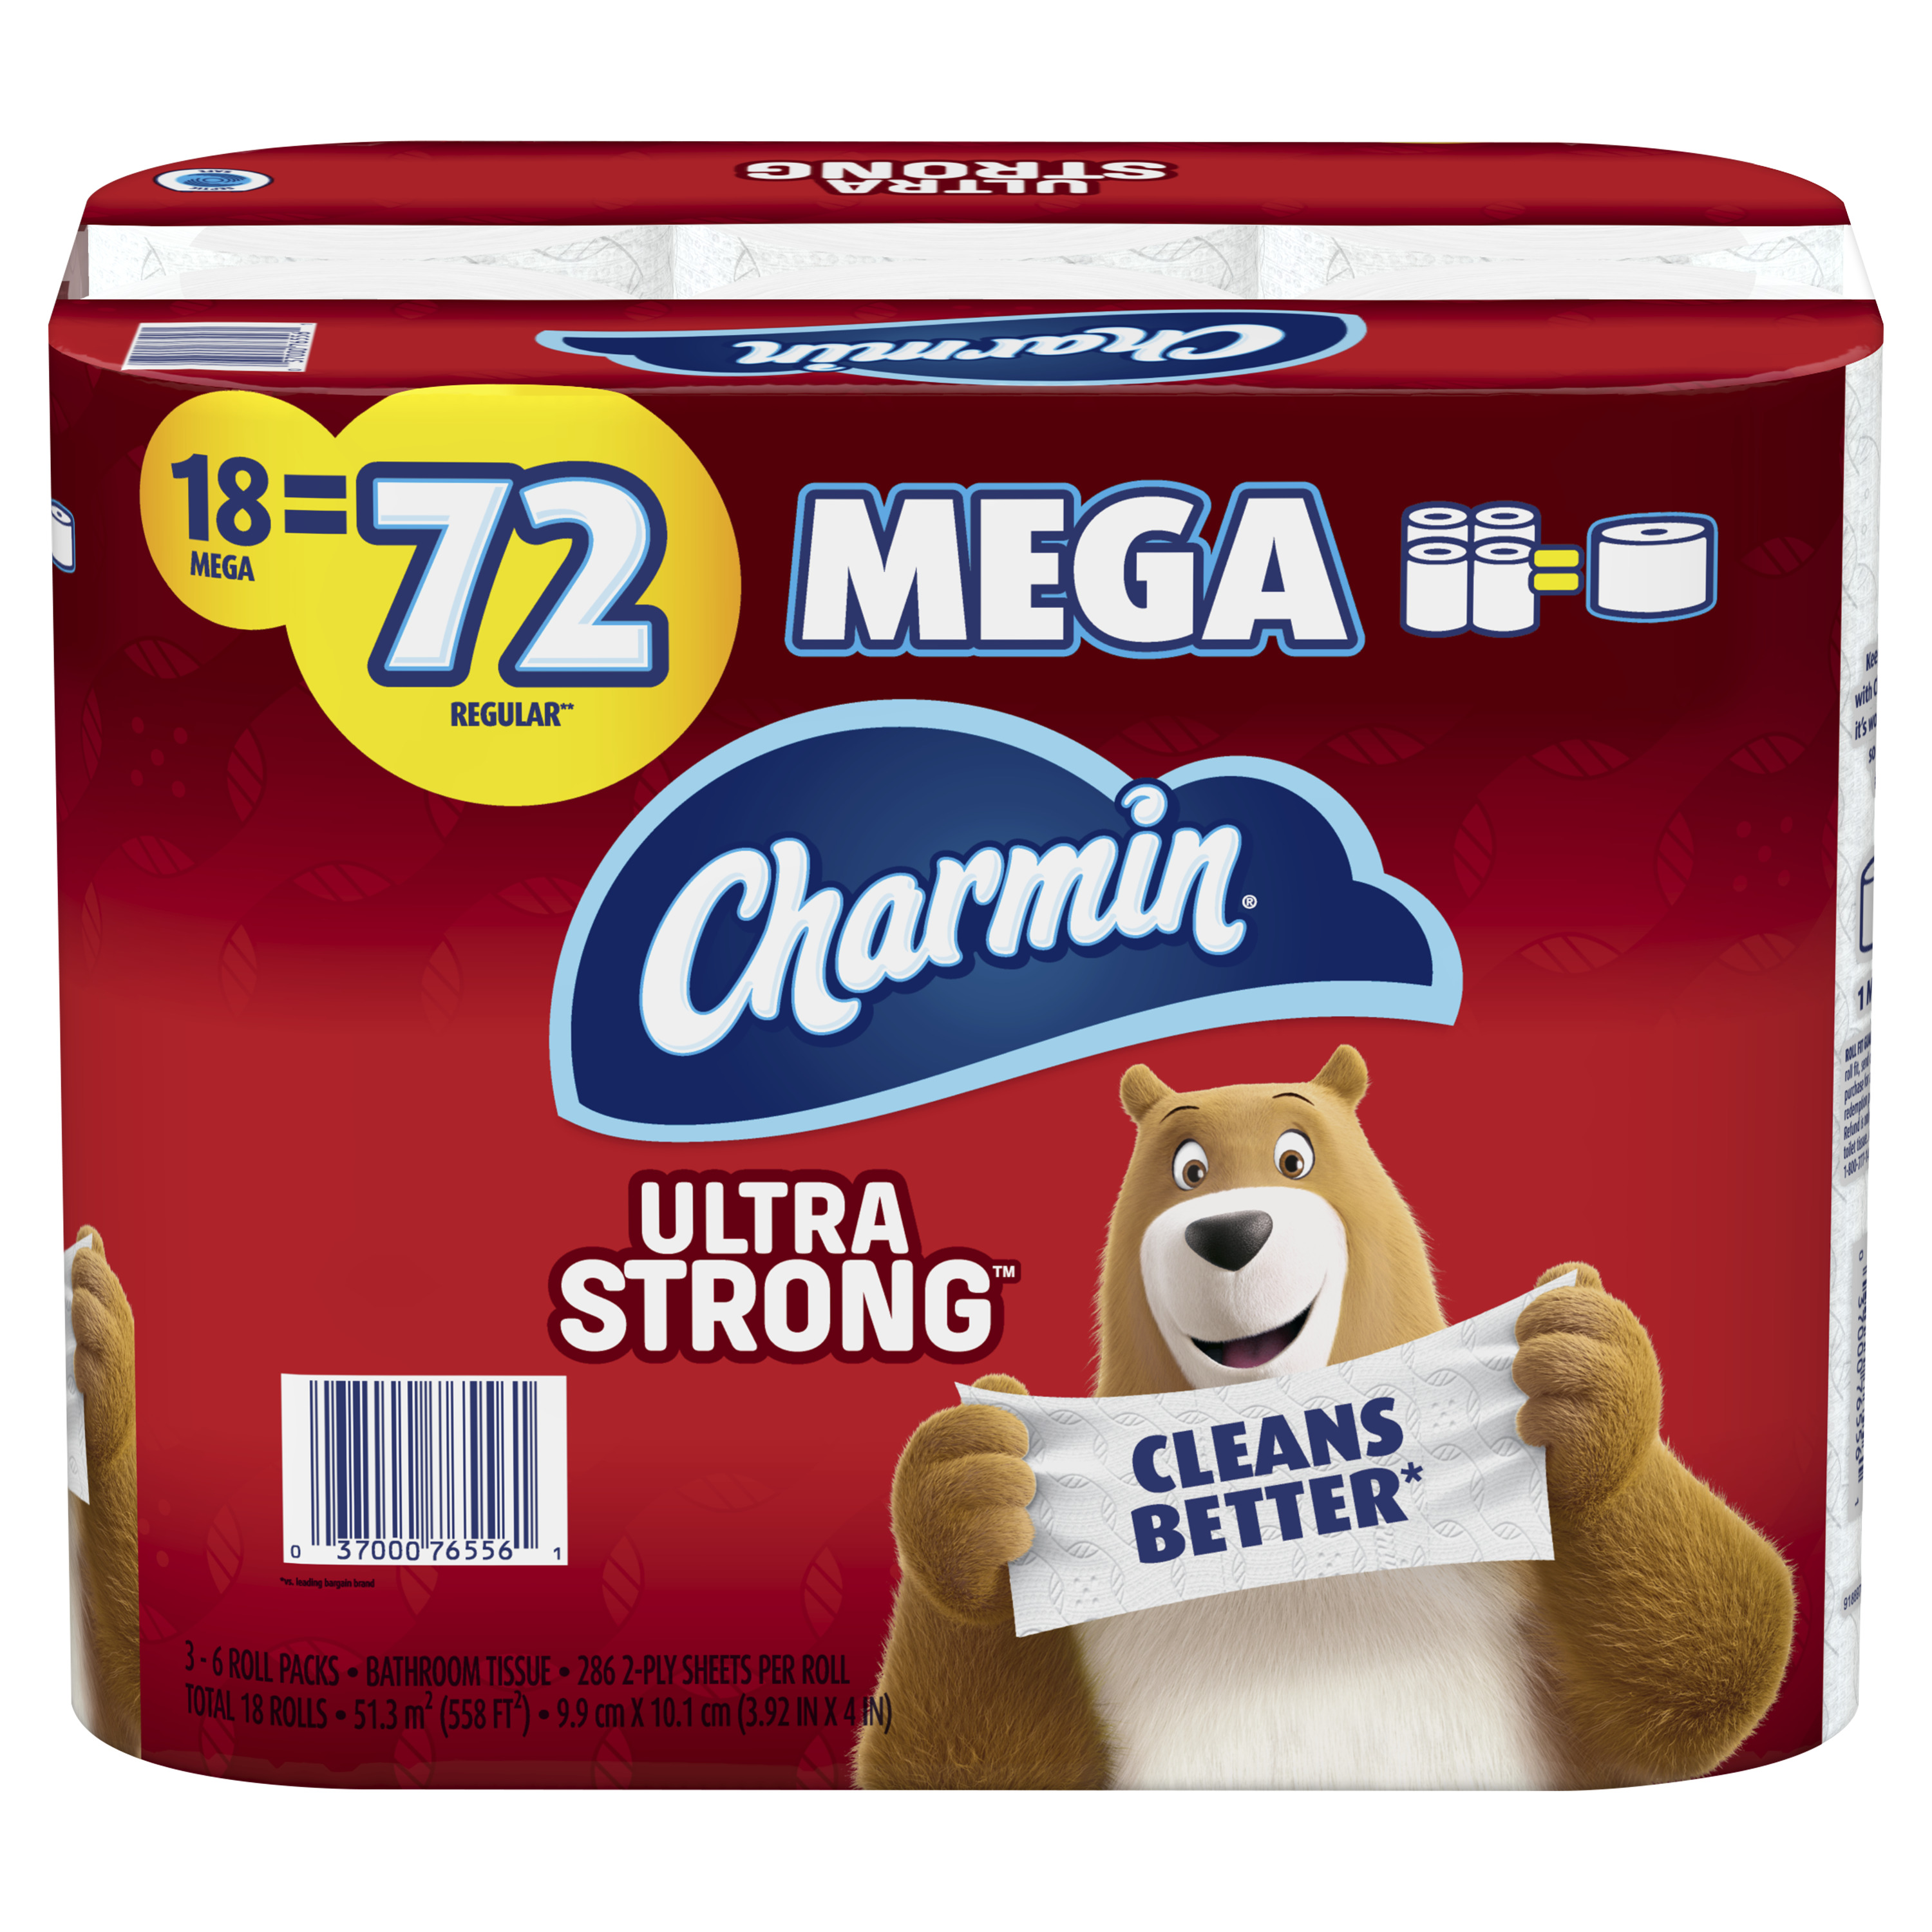 how many sheets in a roll of charmin toilet paper